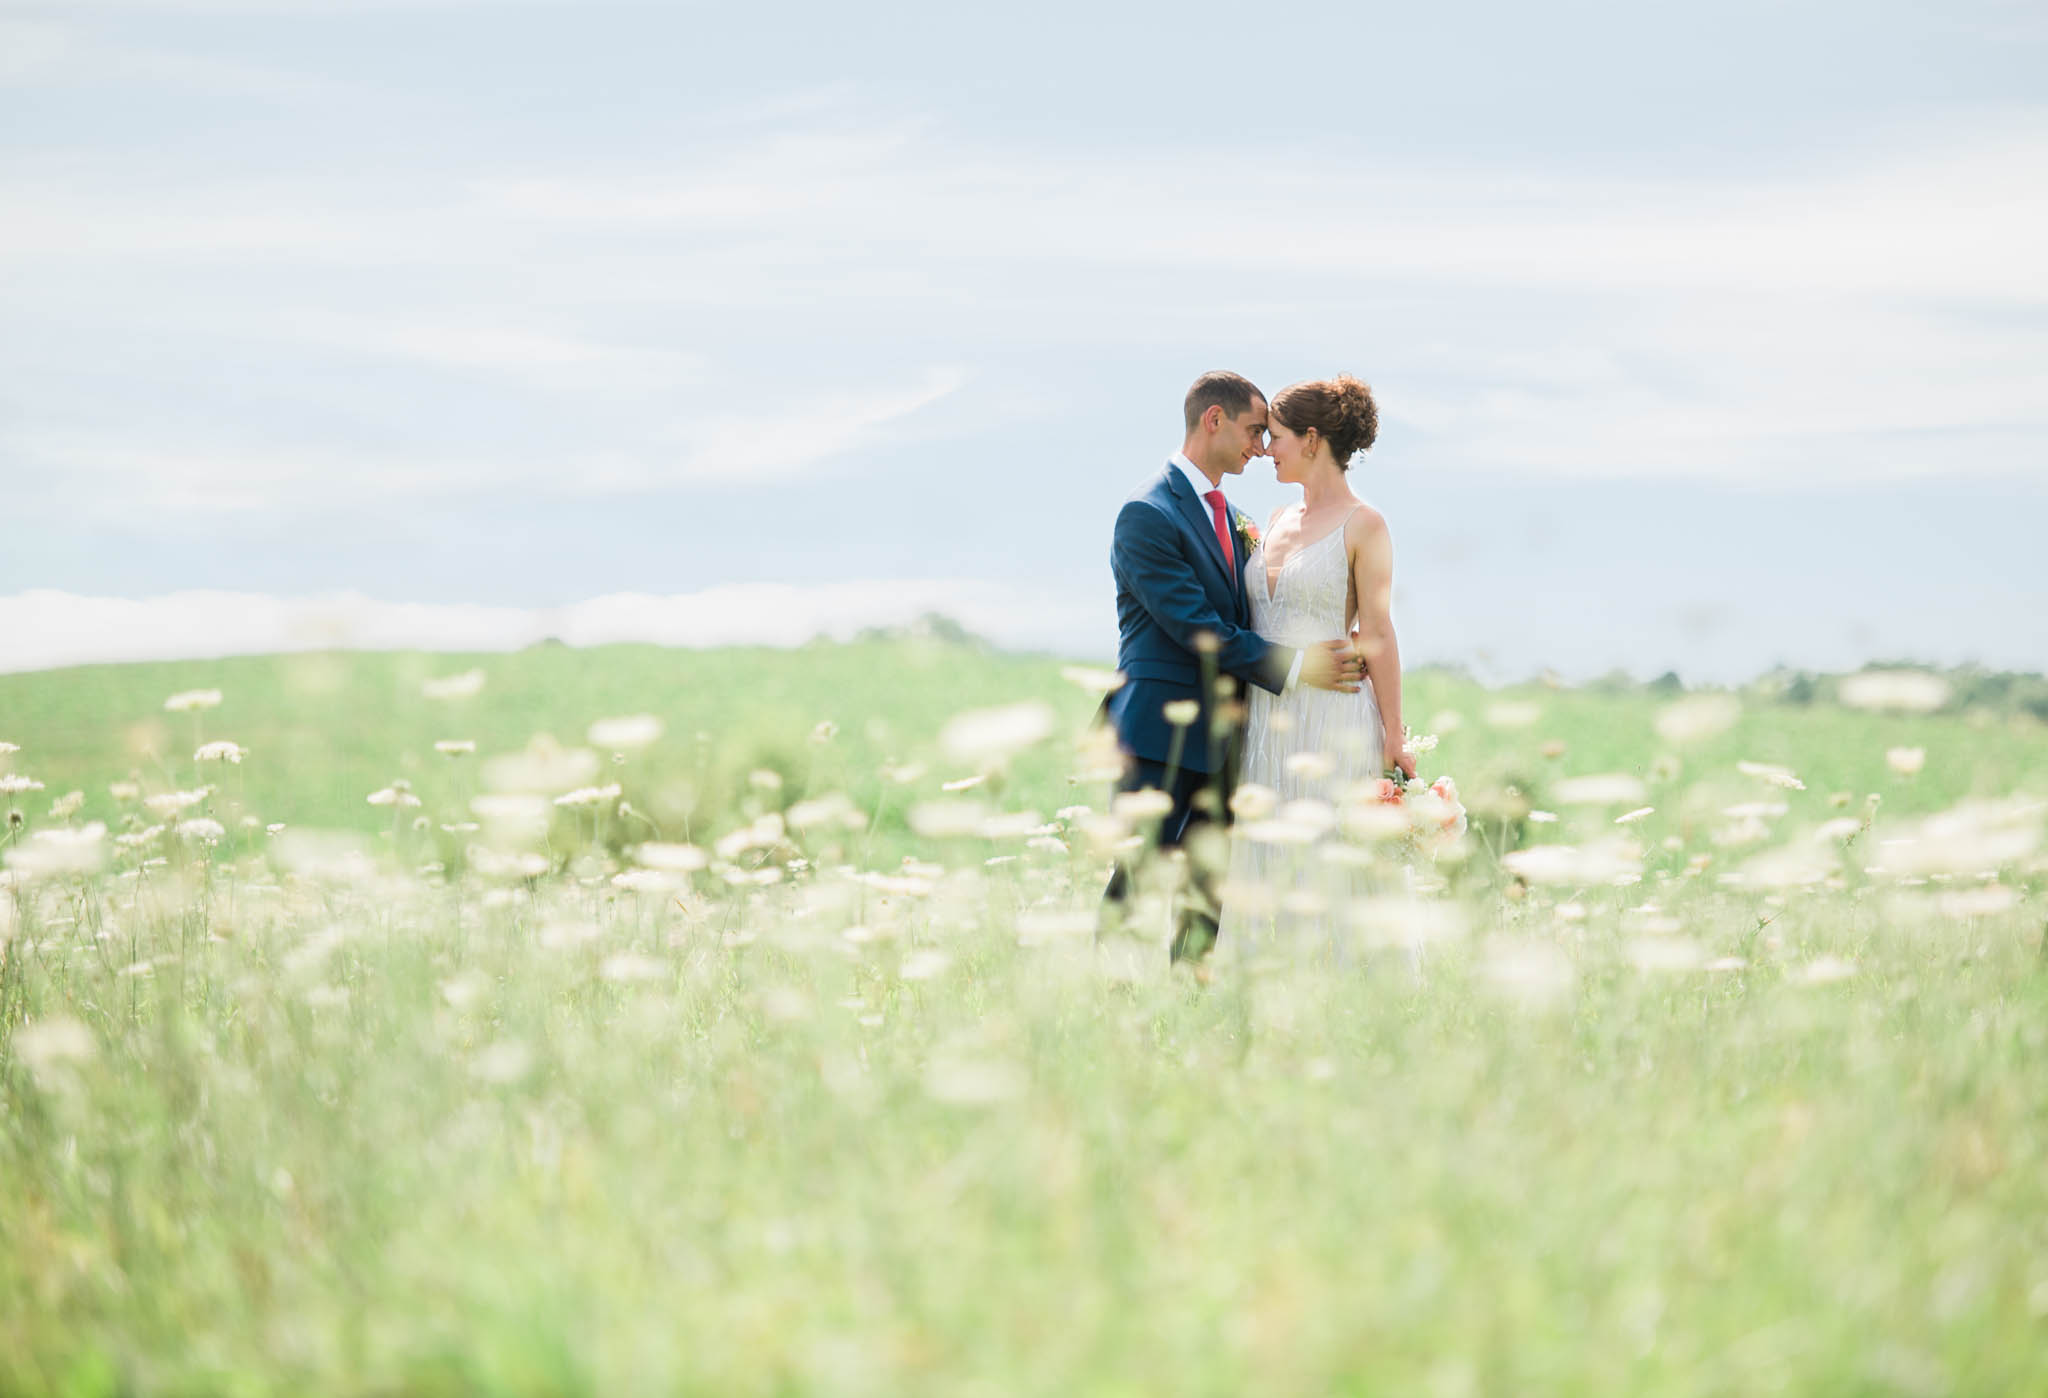 Beautiful Summer Wedding in Buffalo, NY Image